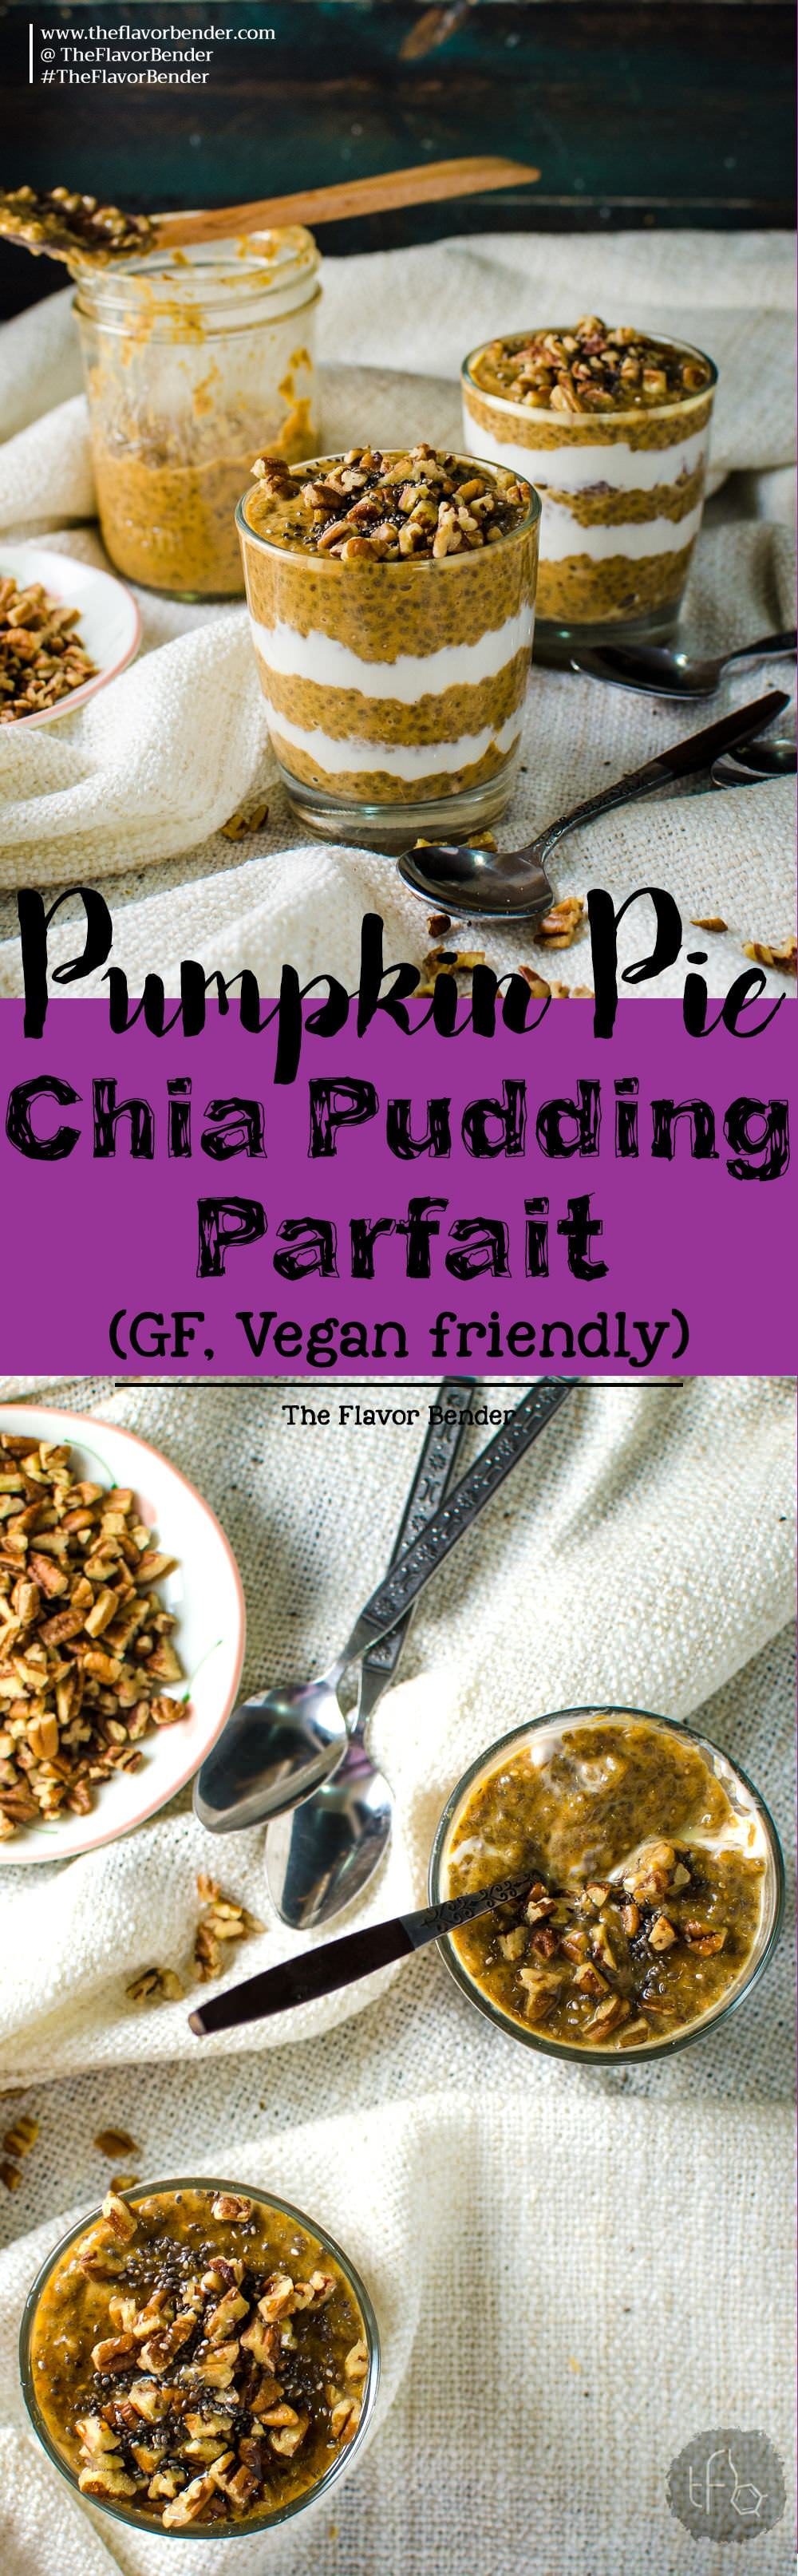 This creamy pumpkin pie chia pudding parfait is the ultimate make-ahead, healthy, delicious breakfast! Full of fiber, protein & cozy flavors of Fall! Breakfast | Parfait | Pumpkin | Pumpking Spice | Chia Pudding | Yogurt | Gluten free | Vegan Friendly | Paleo friendly | Overnight | Recipe via theflavorbender.com